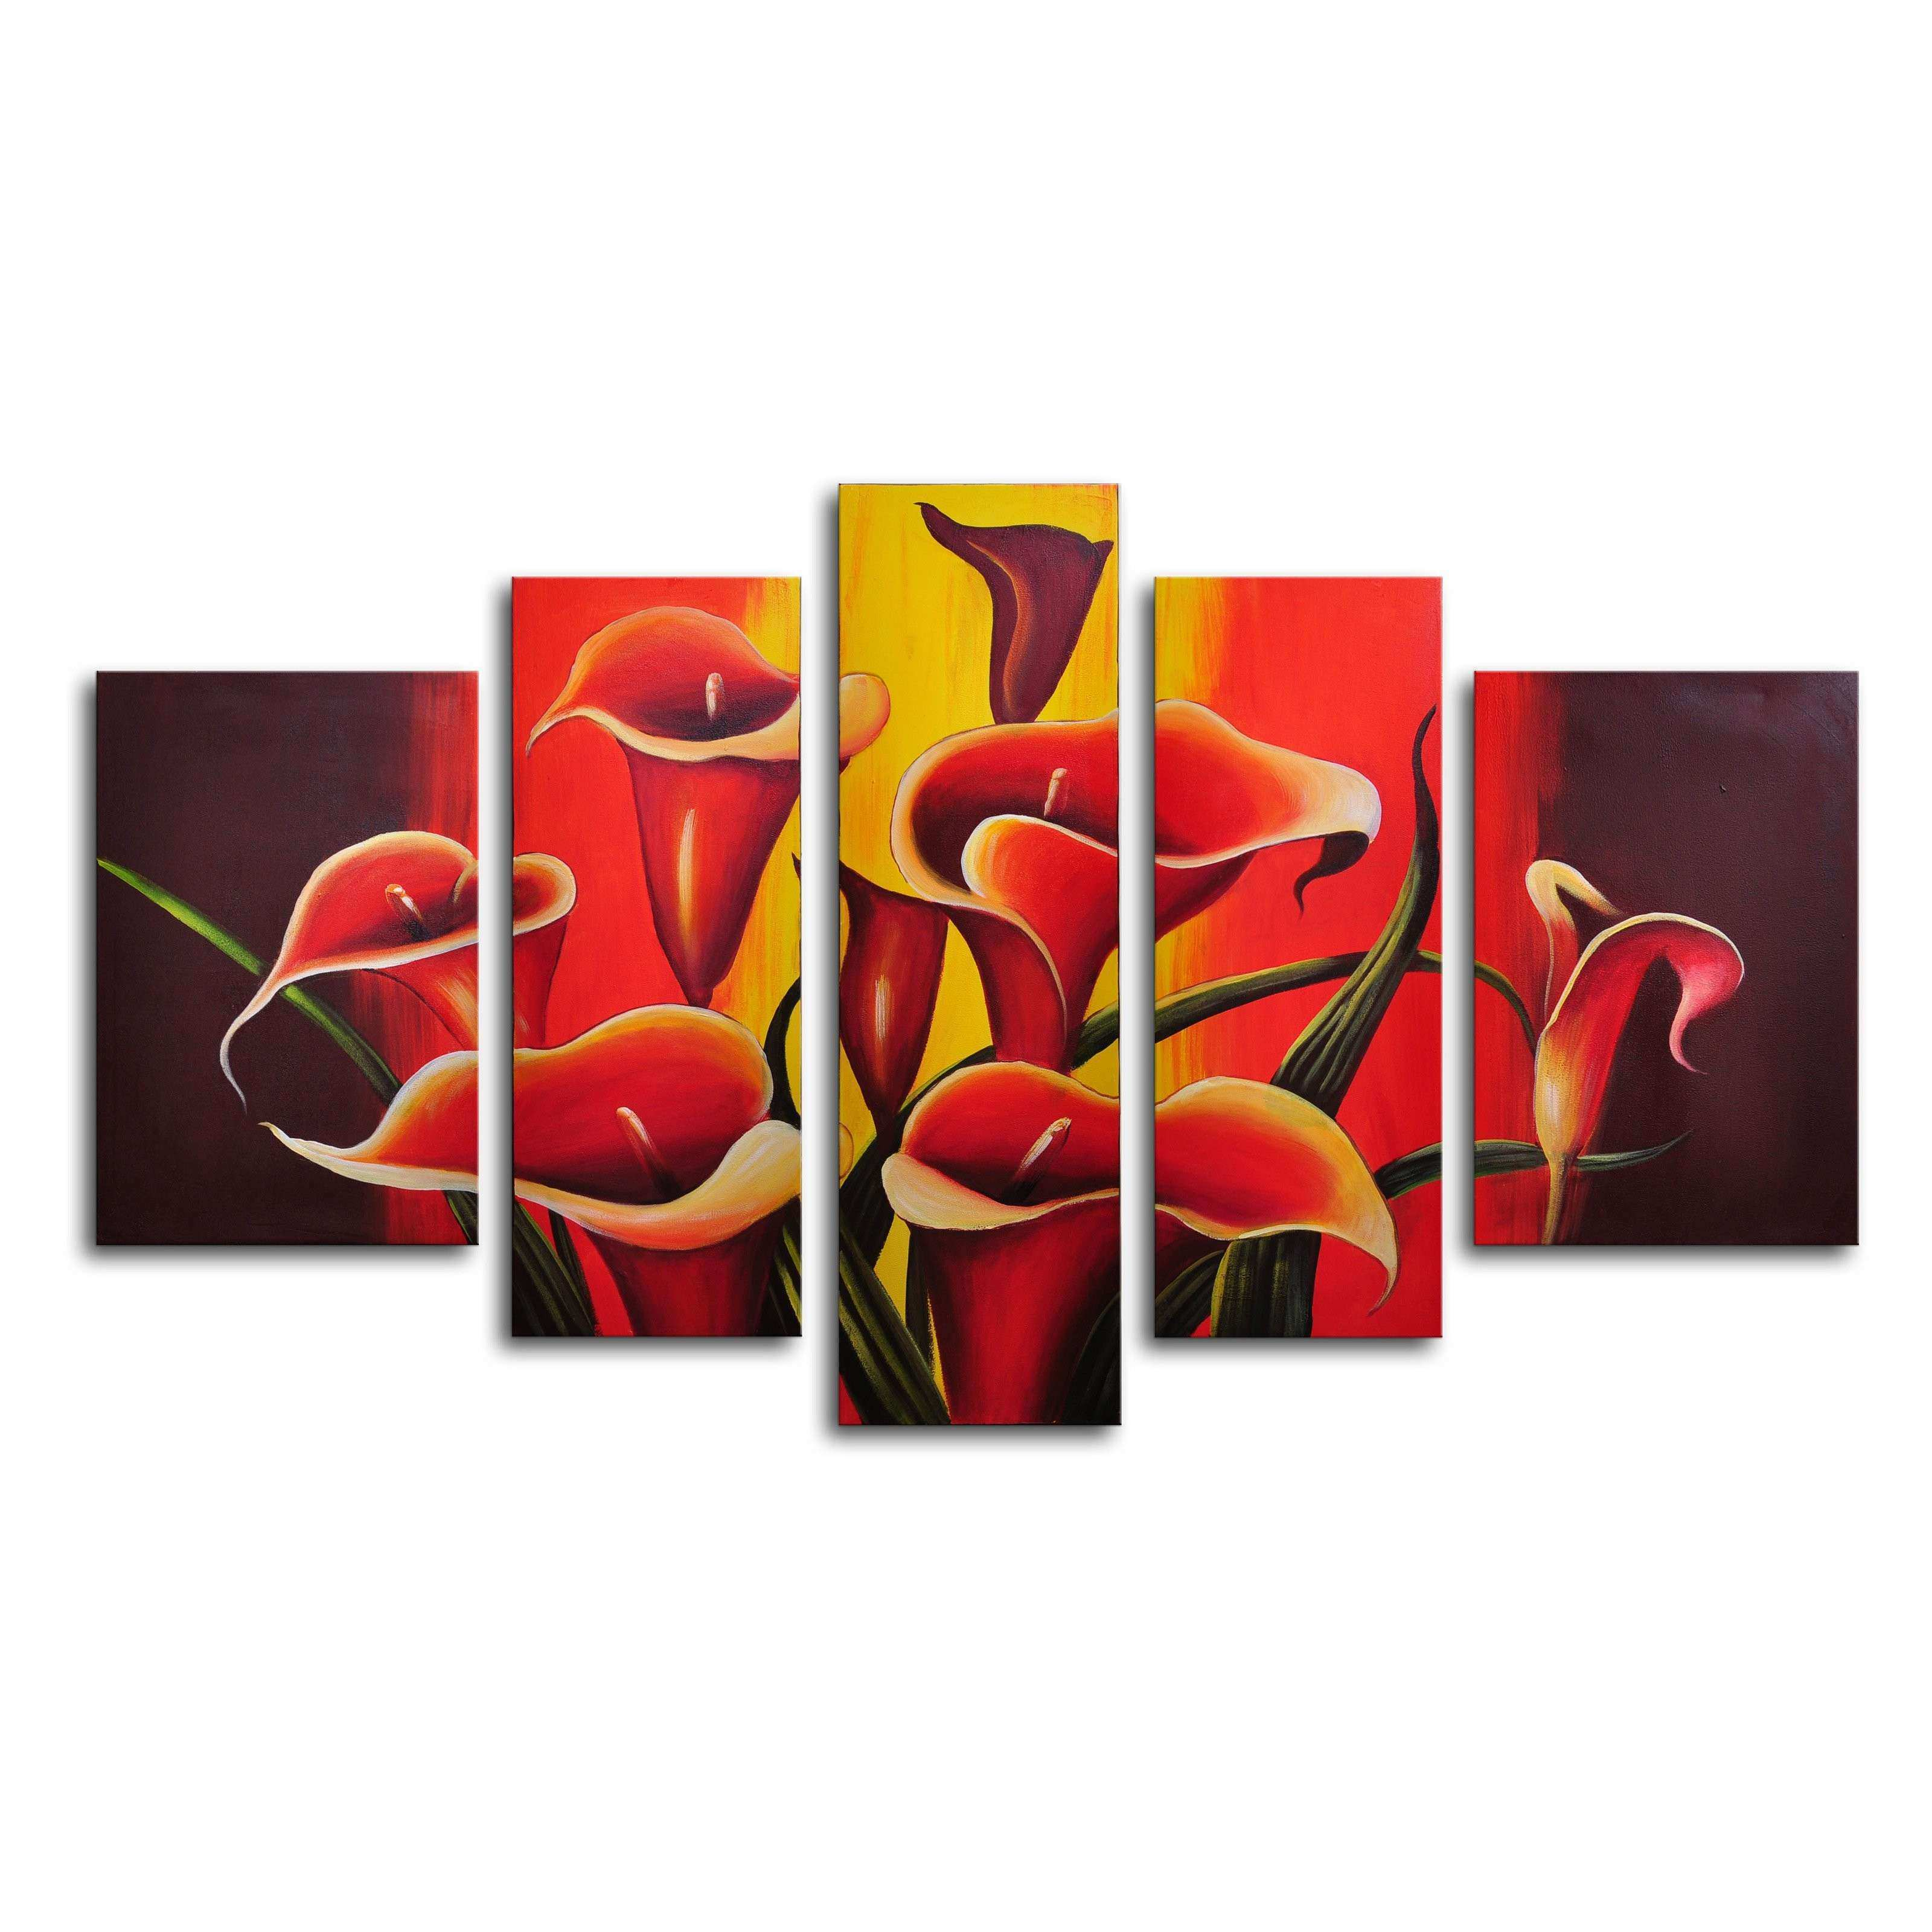 Mexican Fiesta 5 Piece Canvas Wall Art 68W x 40H in